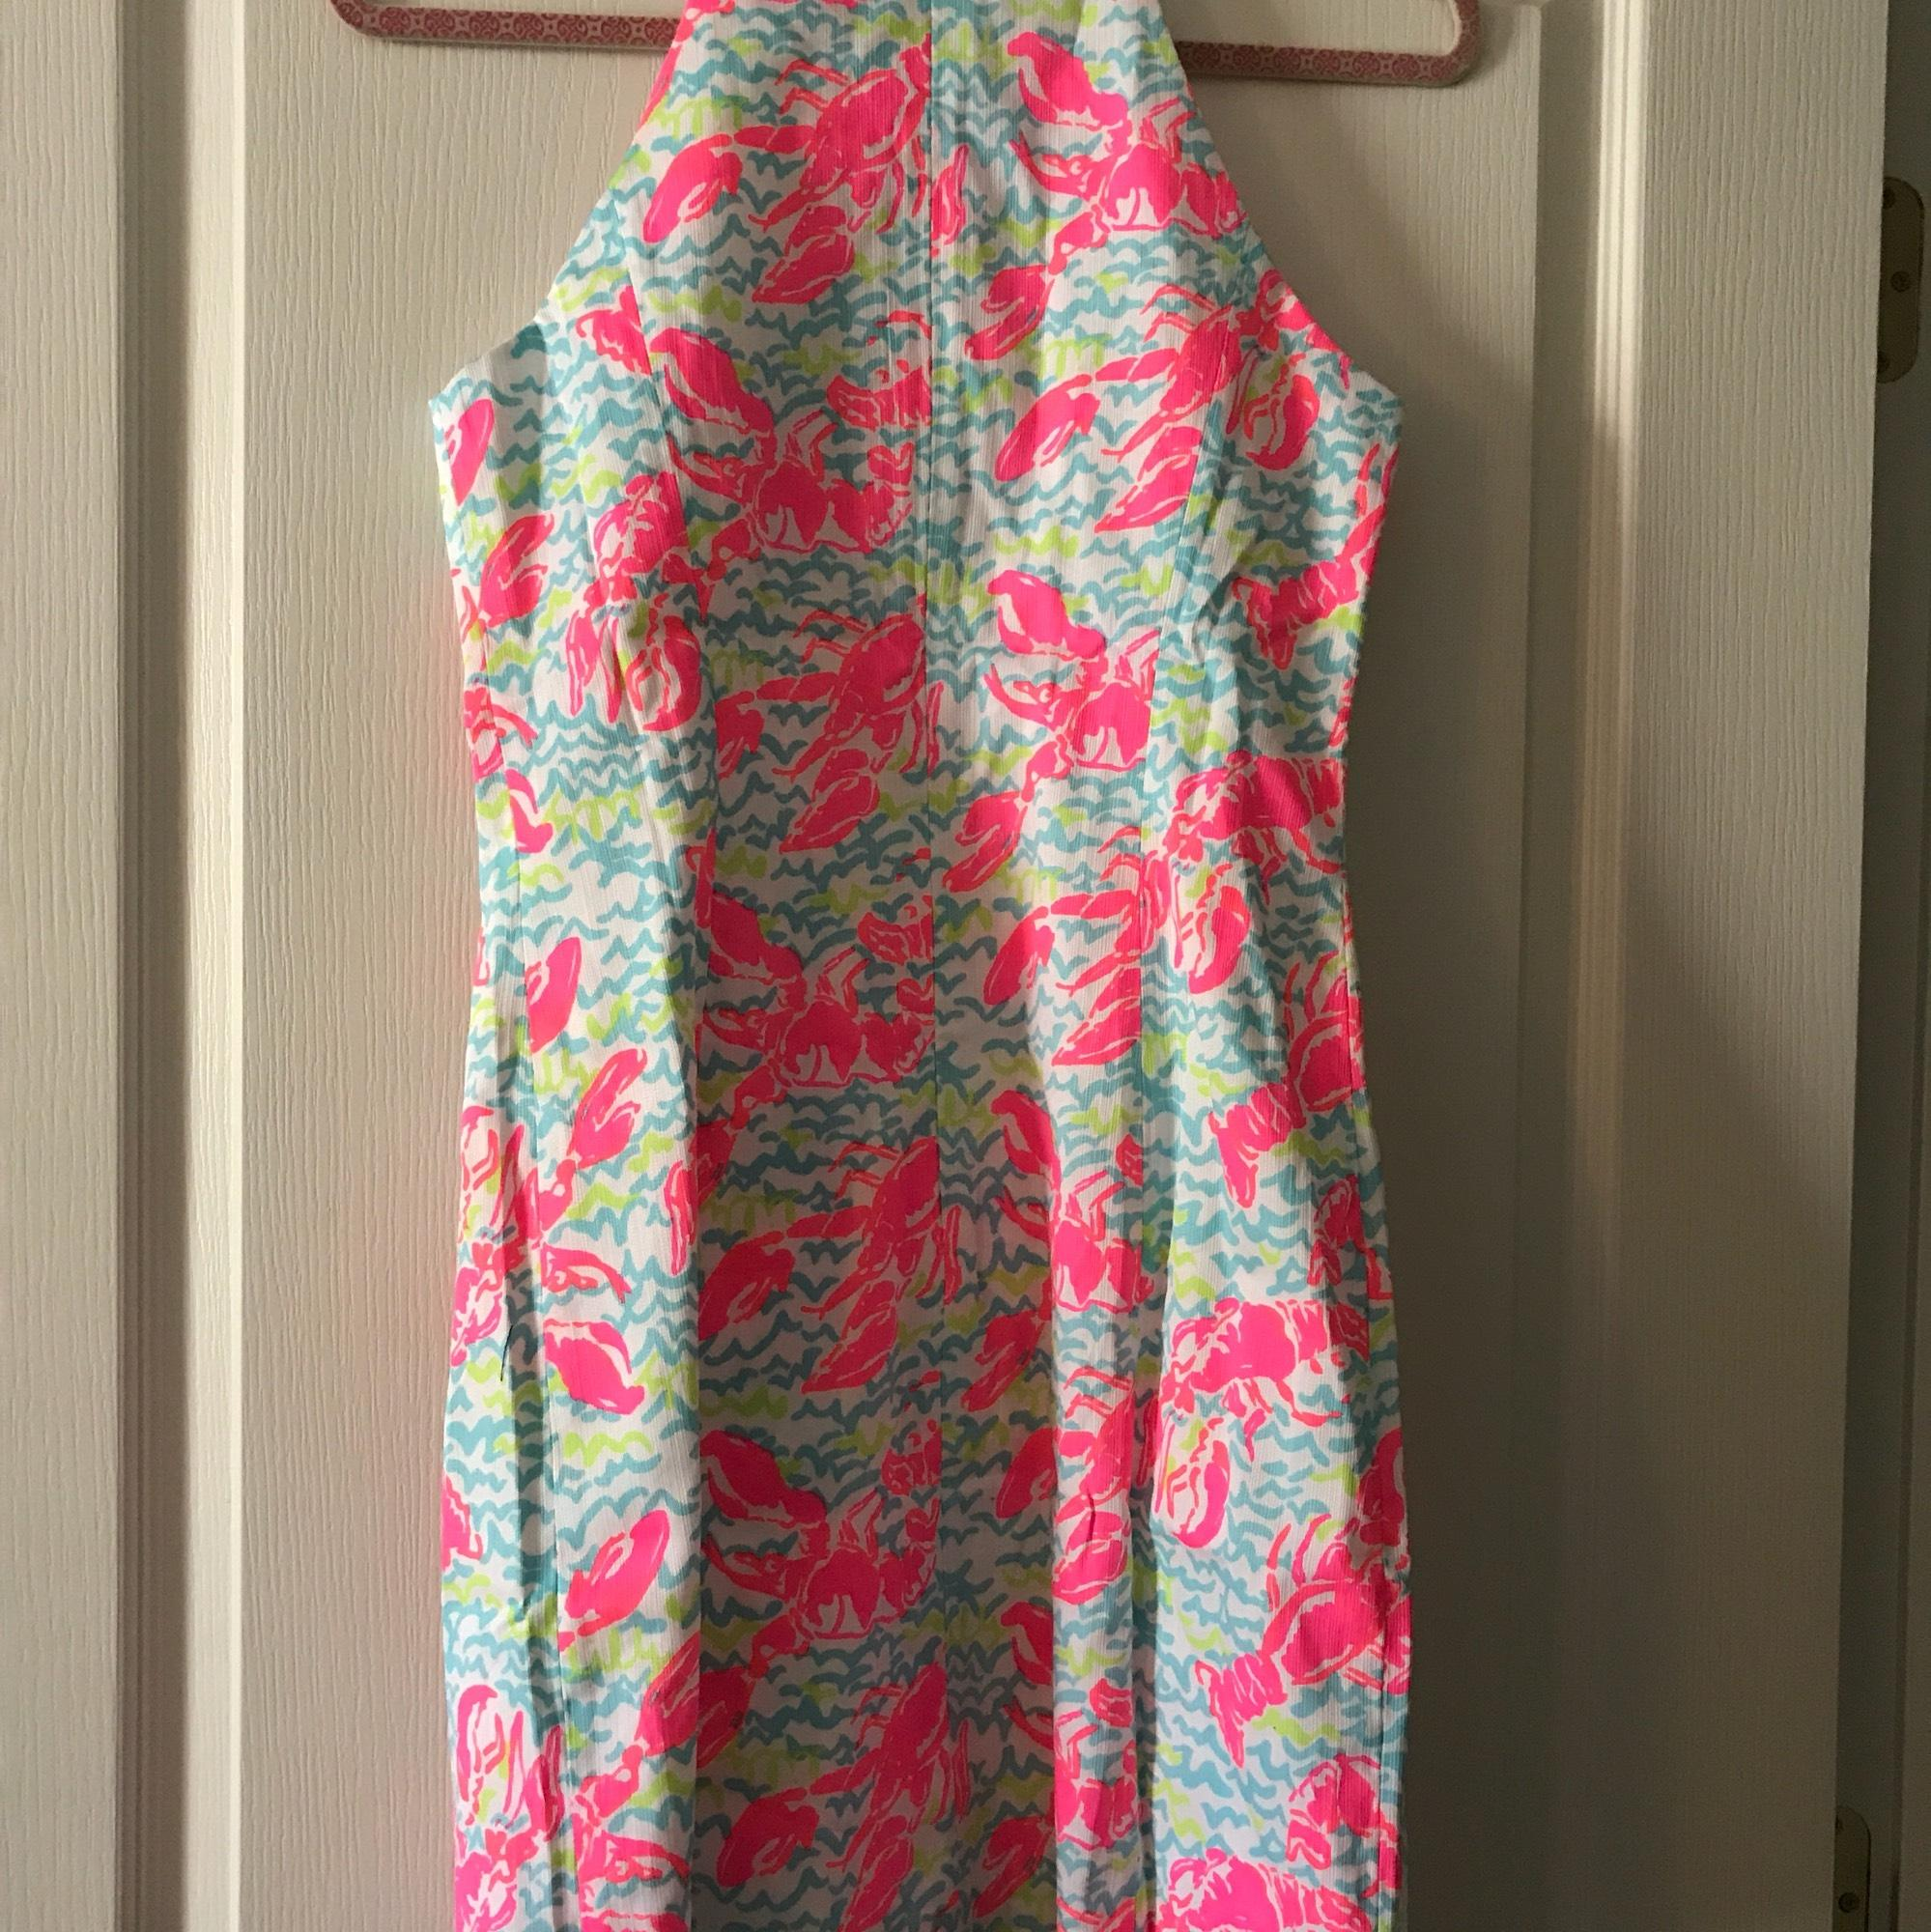 Lilly Pulitzer White/ Pink/ Blue Lobster Roll Mid-length Short Casual Dress Size 2 (XS) - Tradesy